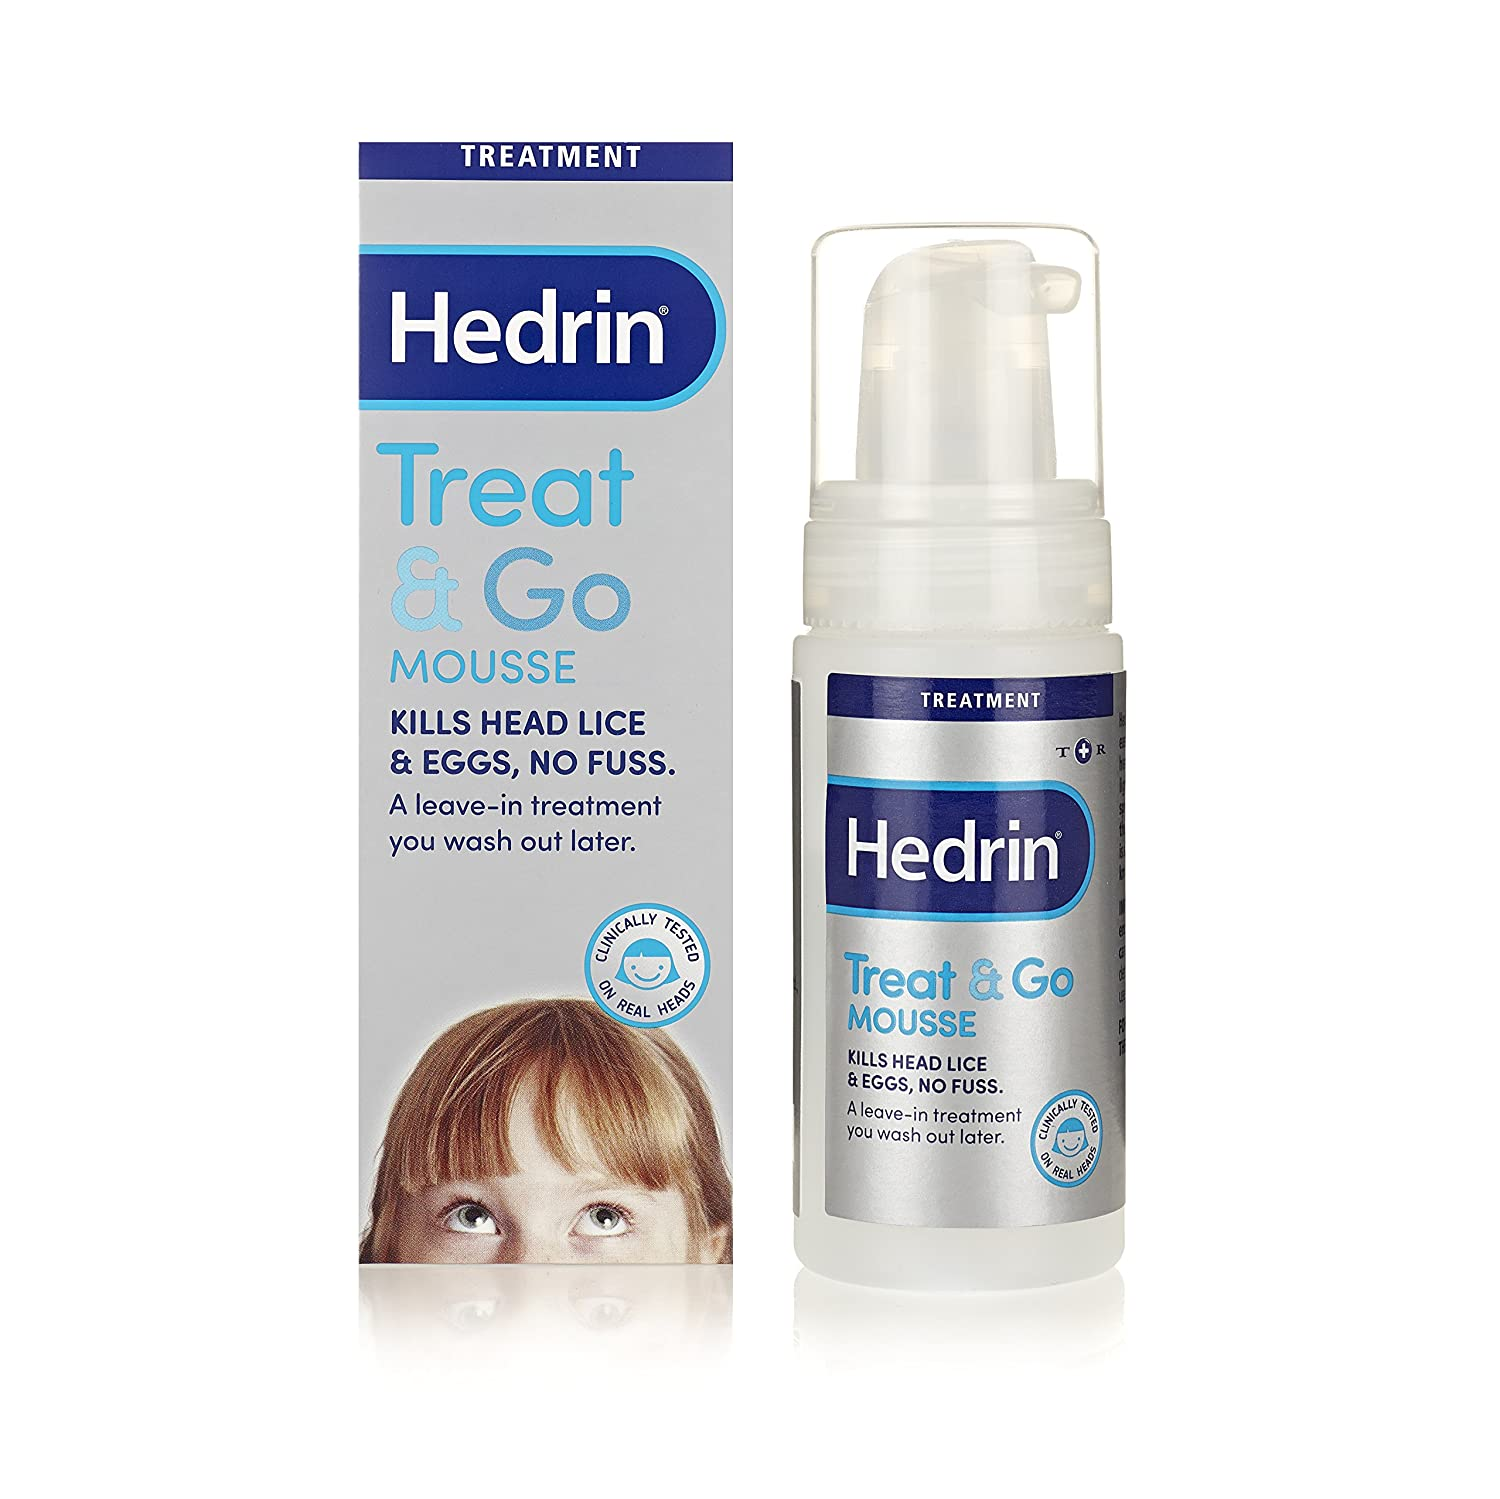 Hedrin Treat and Go Mousse, 100ml Thornton & Ross Ltd 820795